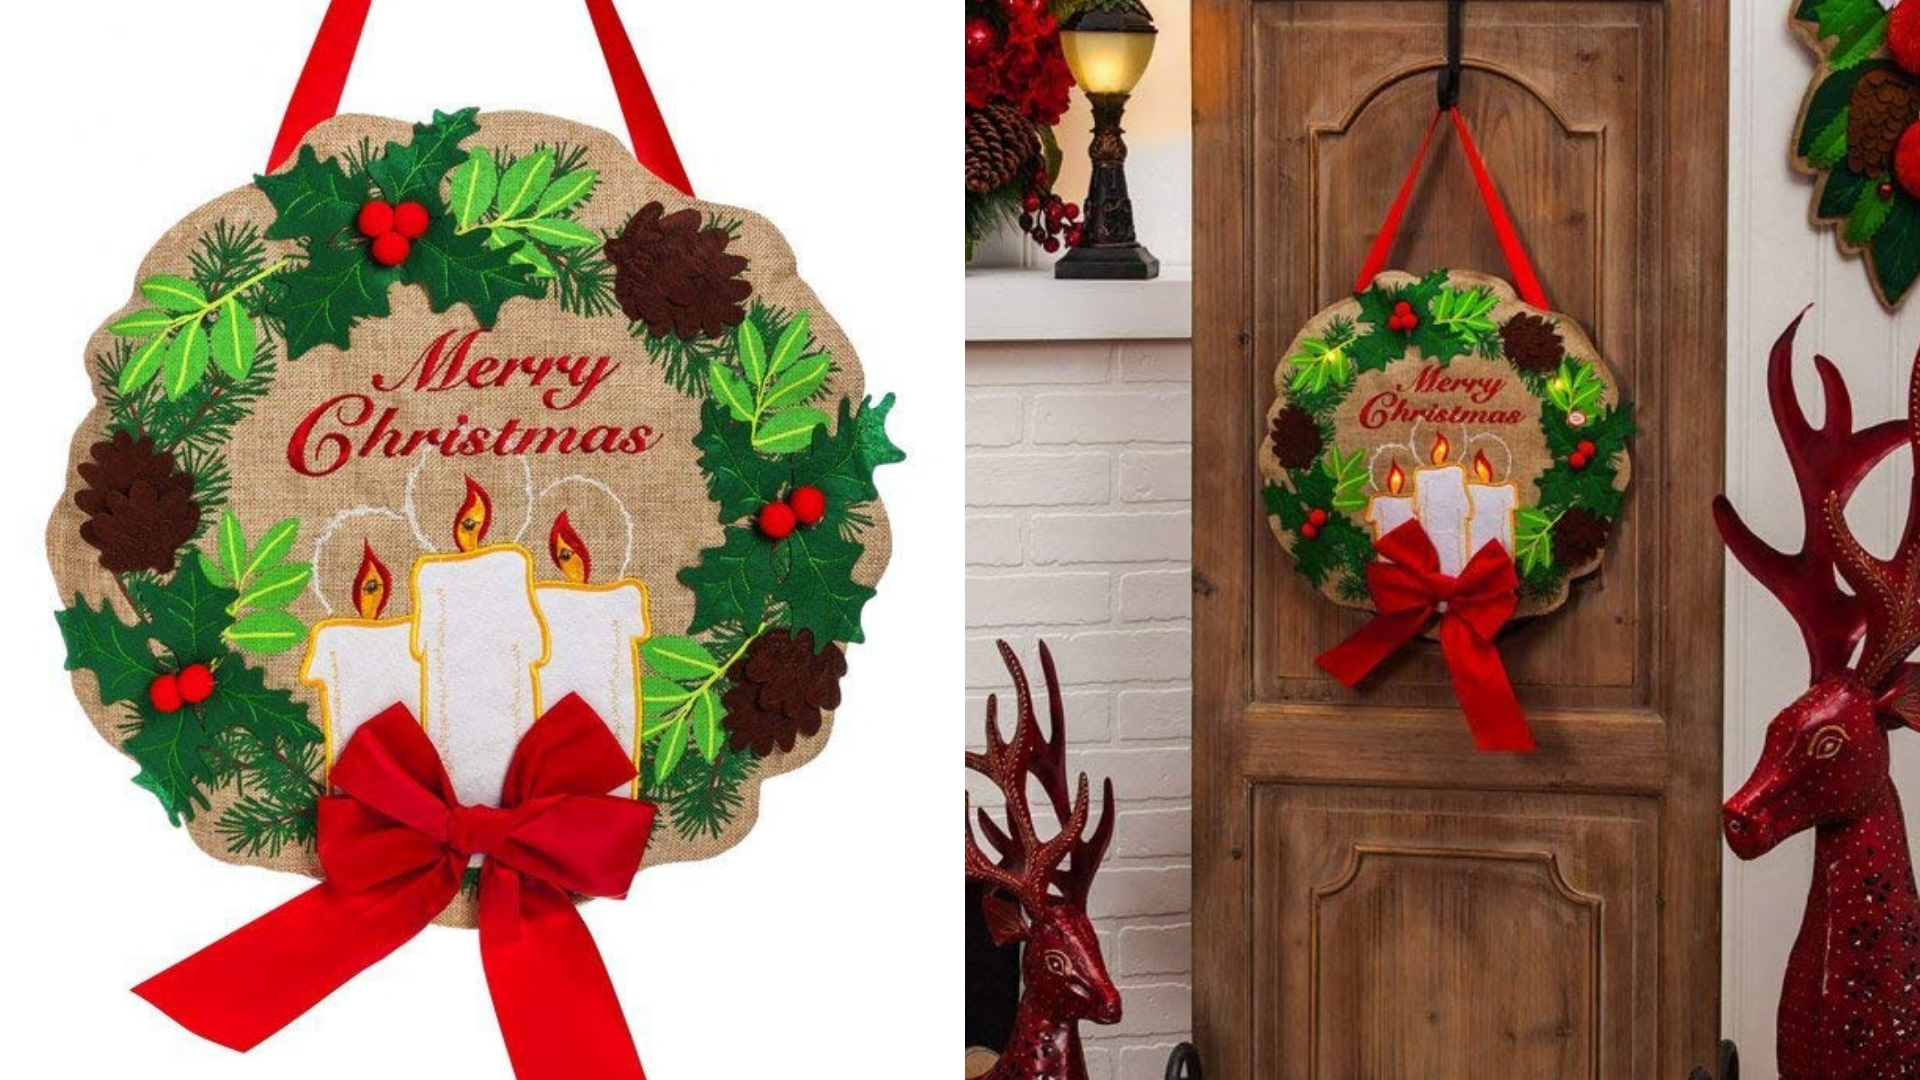 evergreen candle light christmas wreath